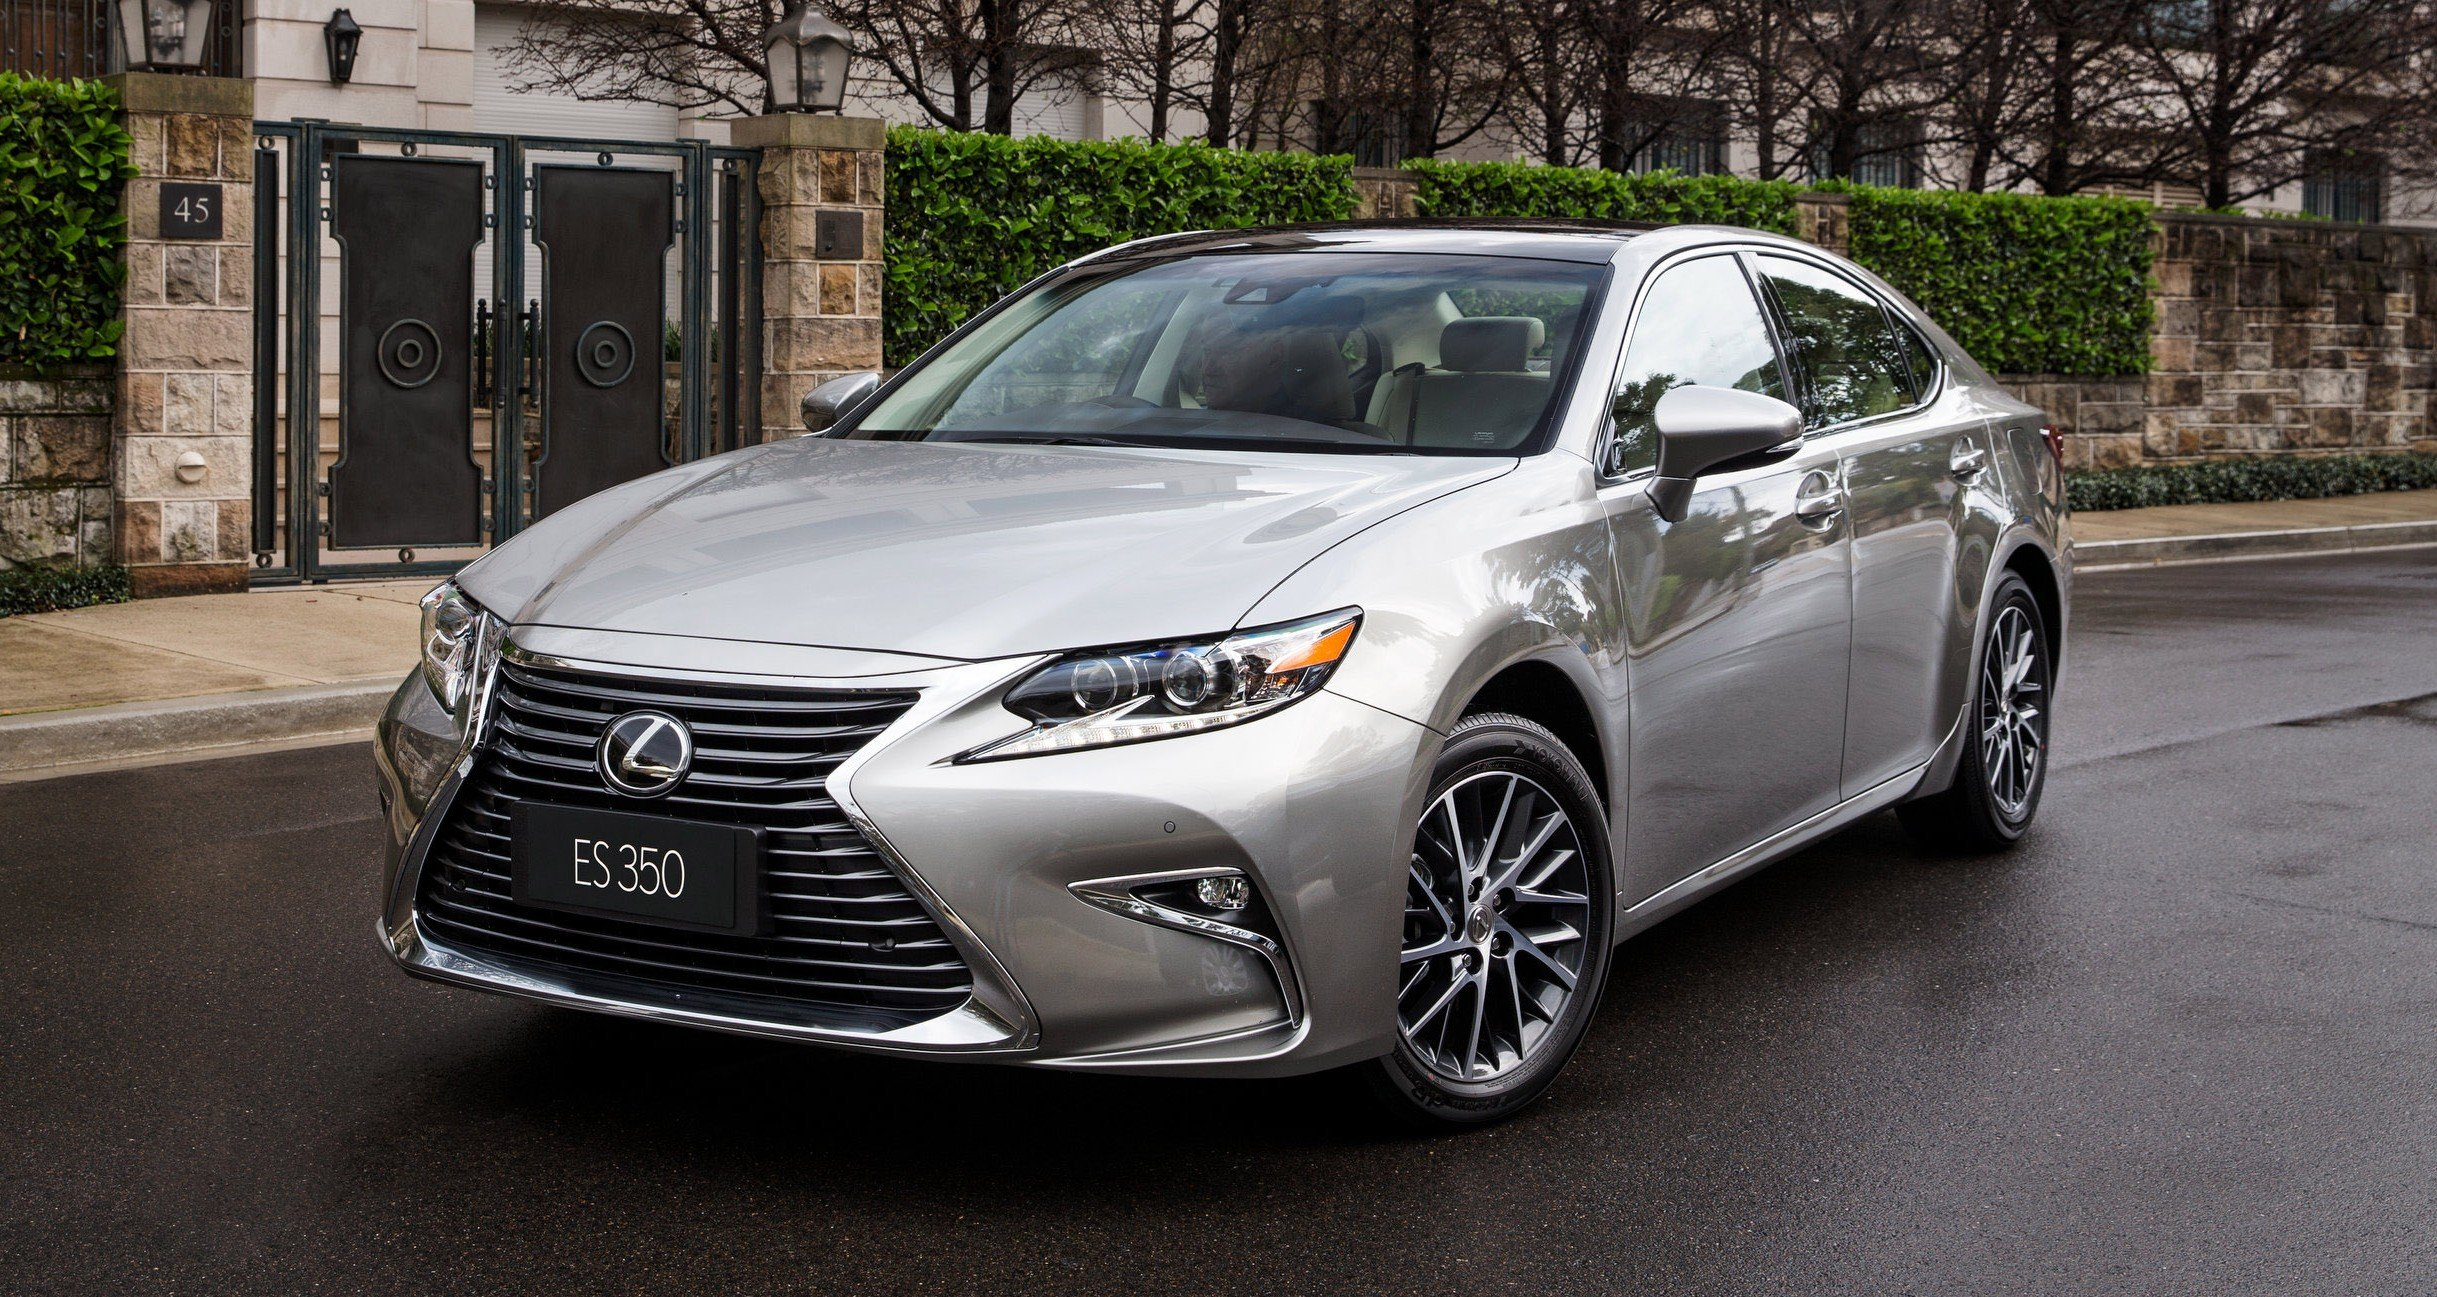 2016 lexus es350 recalled for possible brake system fault photos 1 of 3. Black Bedroom Furniture Sets. Home Design Ideas